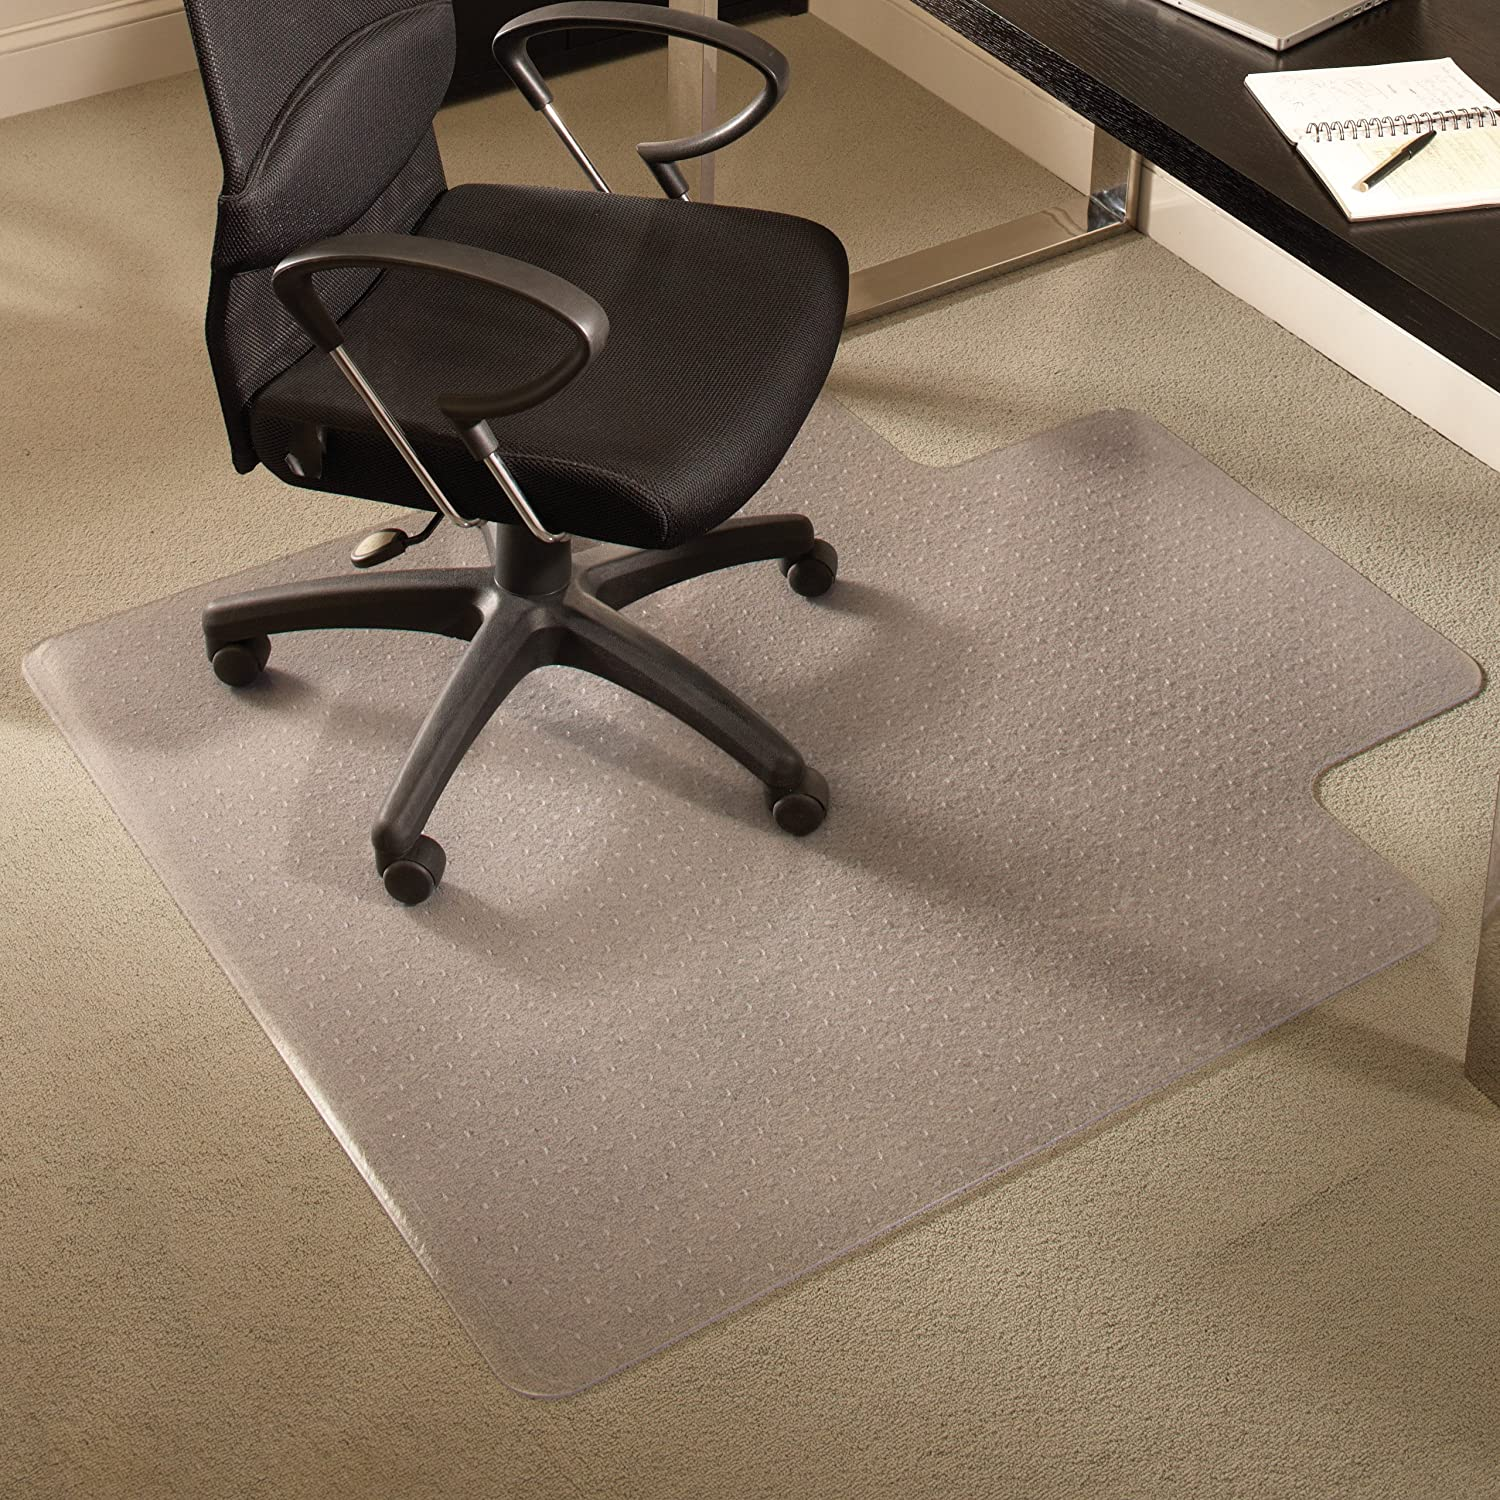 carpet fice slip of furniture mat lip desk ideas for lovely floor inspirational floors non chair